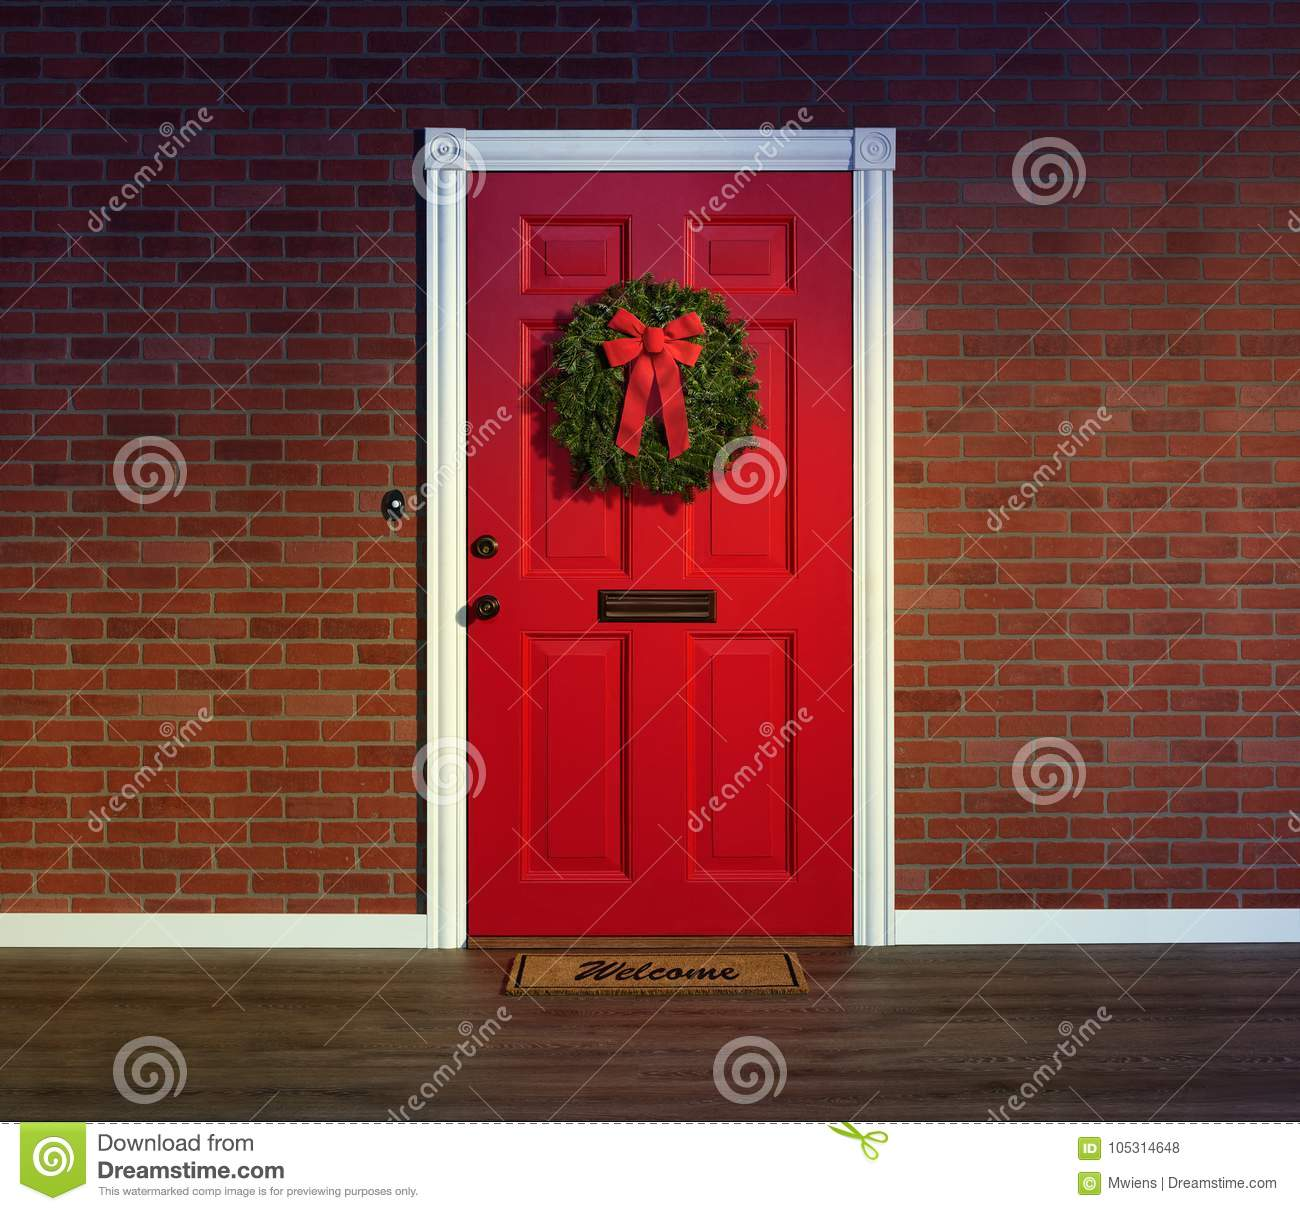 Christmas wreath on red front door with welcome mat.